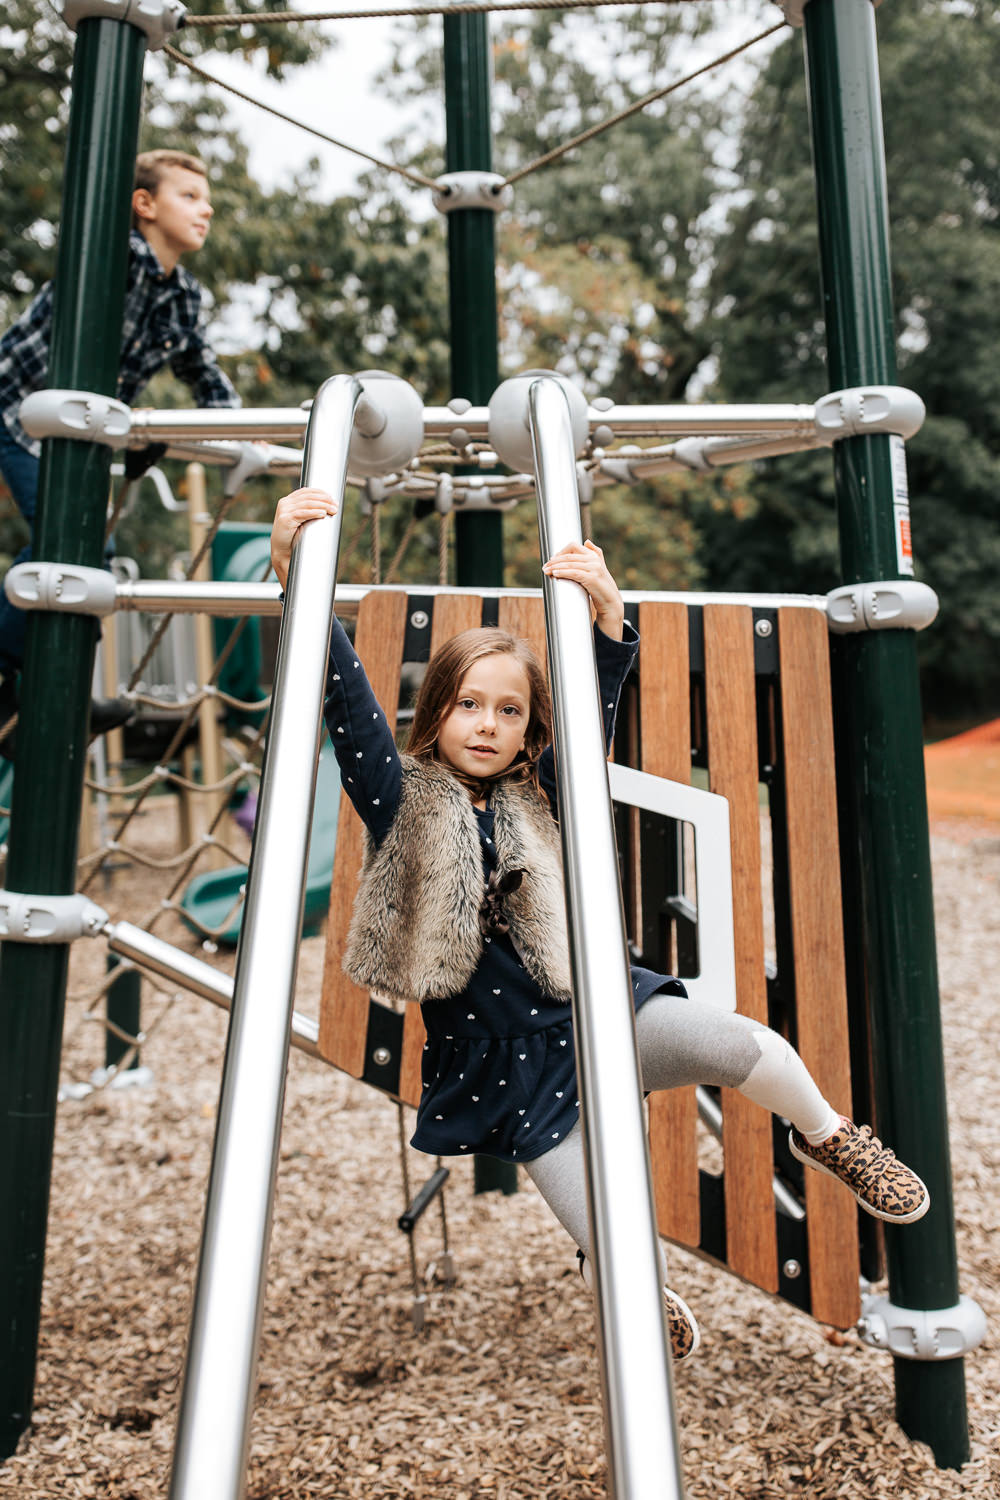 7 year old girl with light brown hair in dress and fur vest swinging from jungle gym at park, and looking seriously at camera - York Region Lifestyle Photos